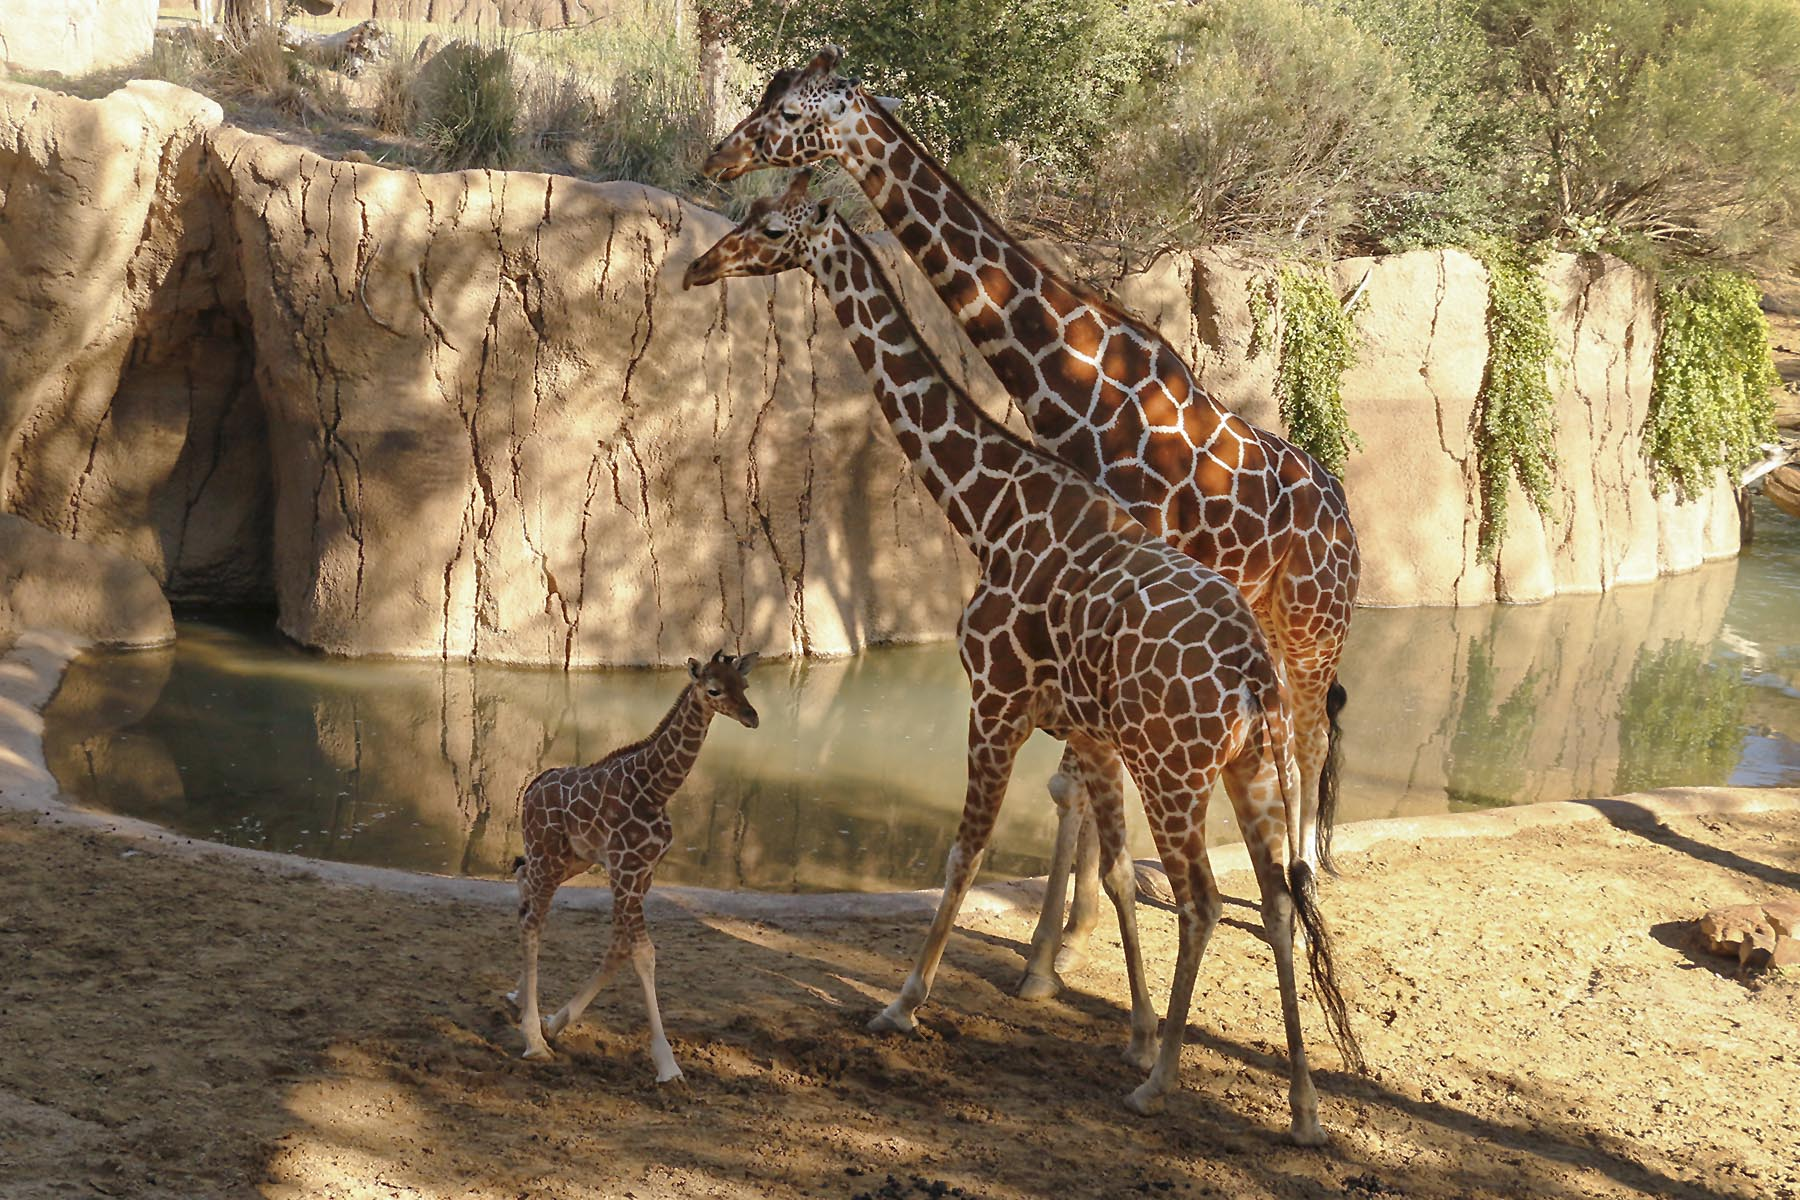 Giraffe dallas zoohoo baby giraffe explores habitat for first time with mother chrystal and oldest male giraffe auggie biocorpaavc Images